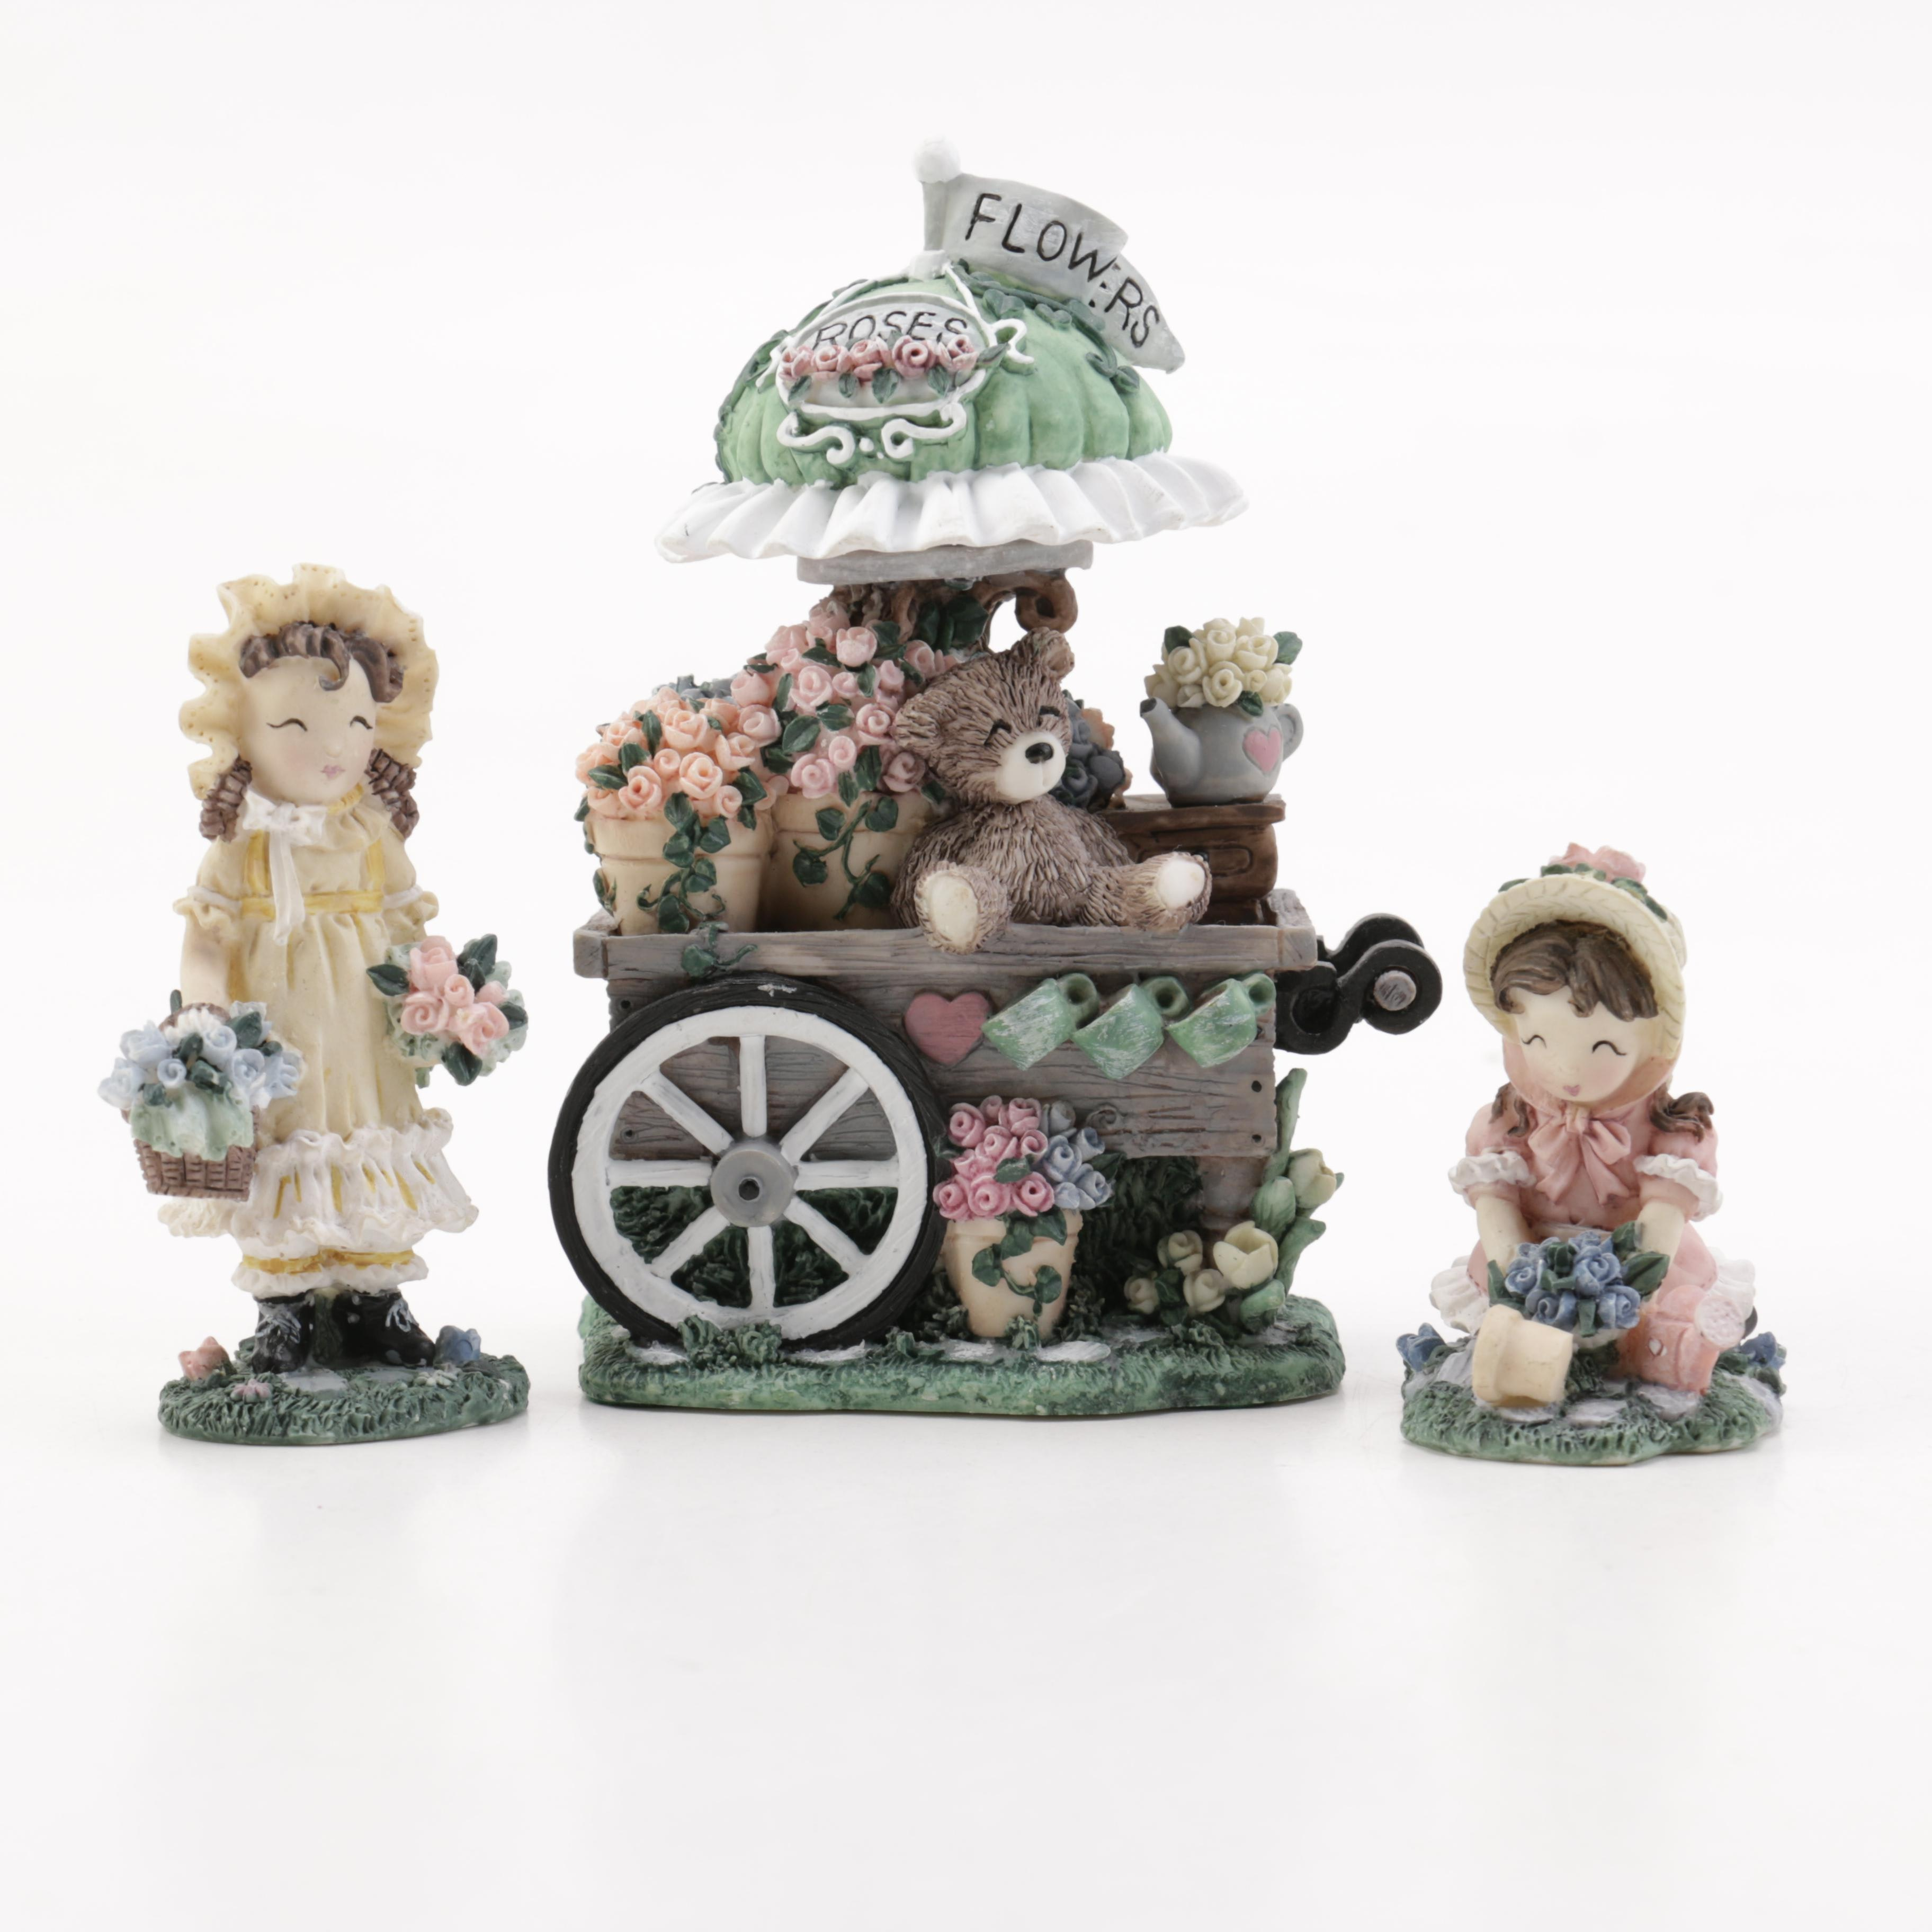 Ivy & Innocence Figurines Featuring Blossom's Flower Cart